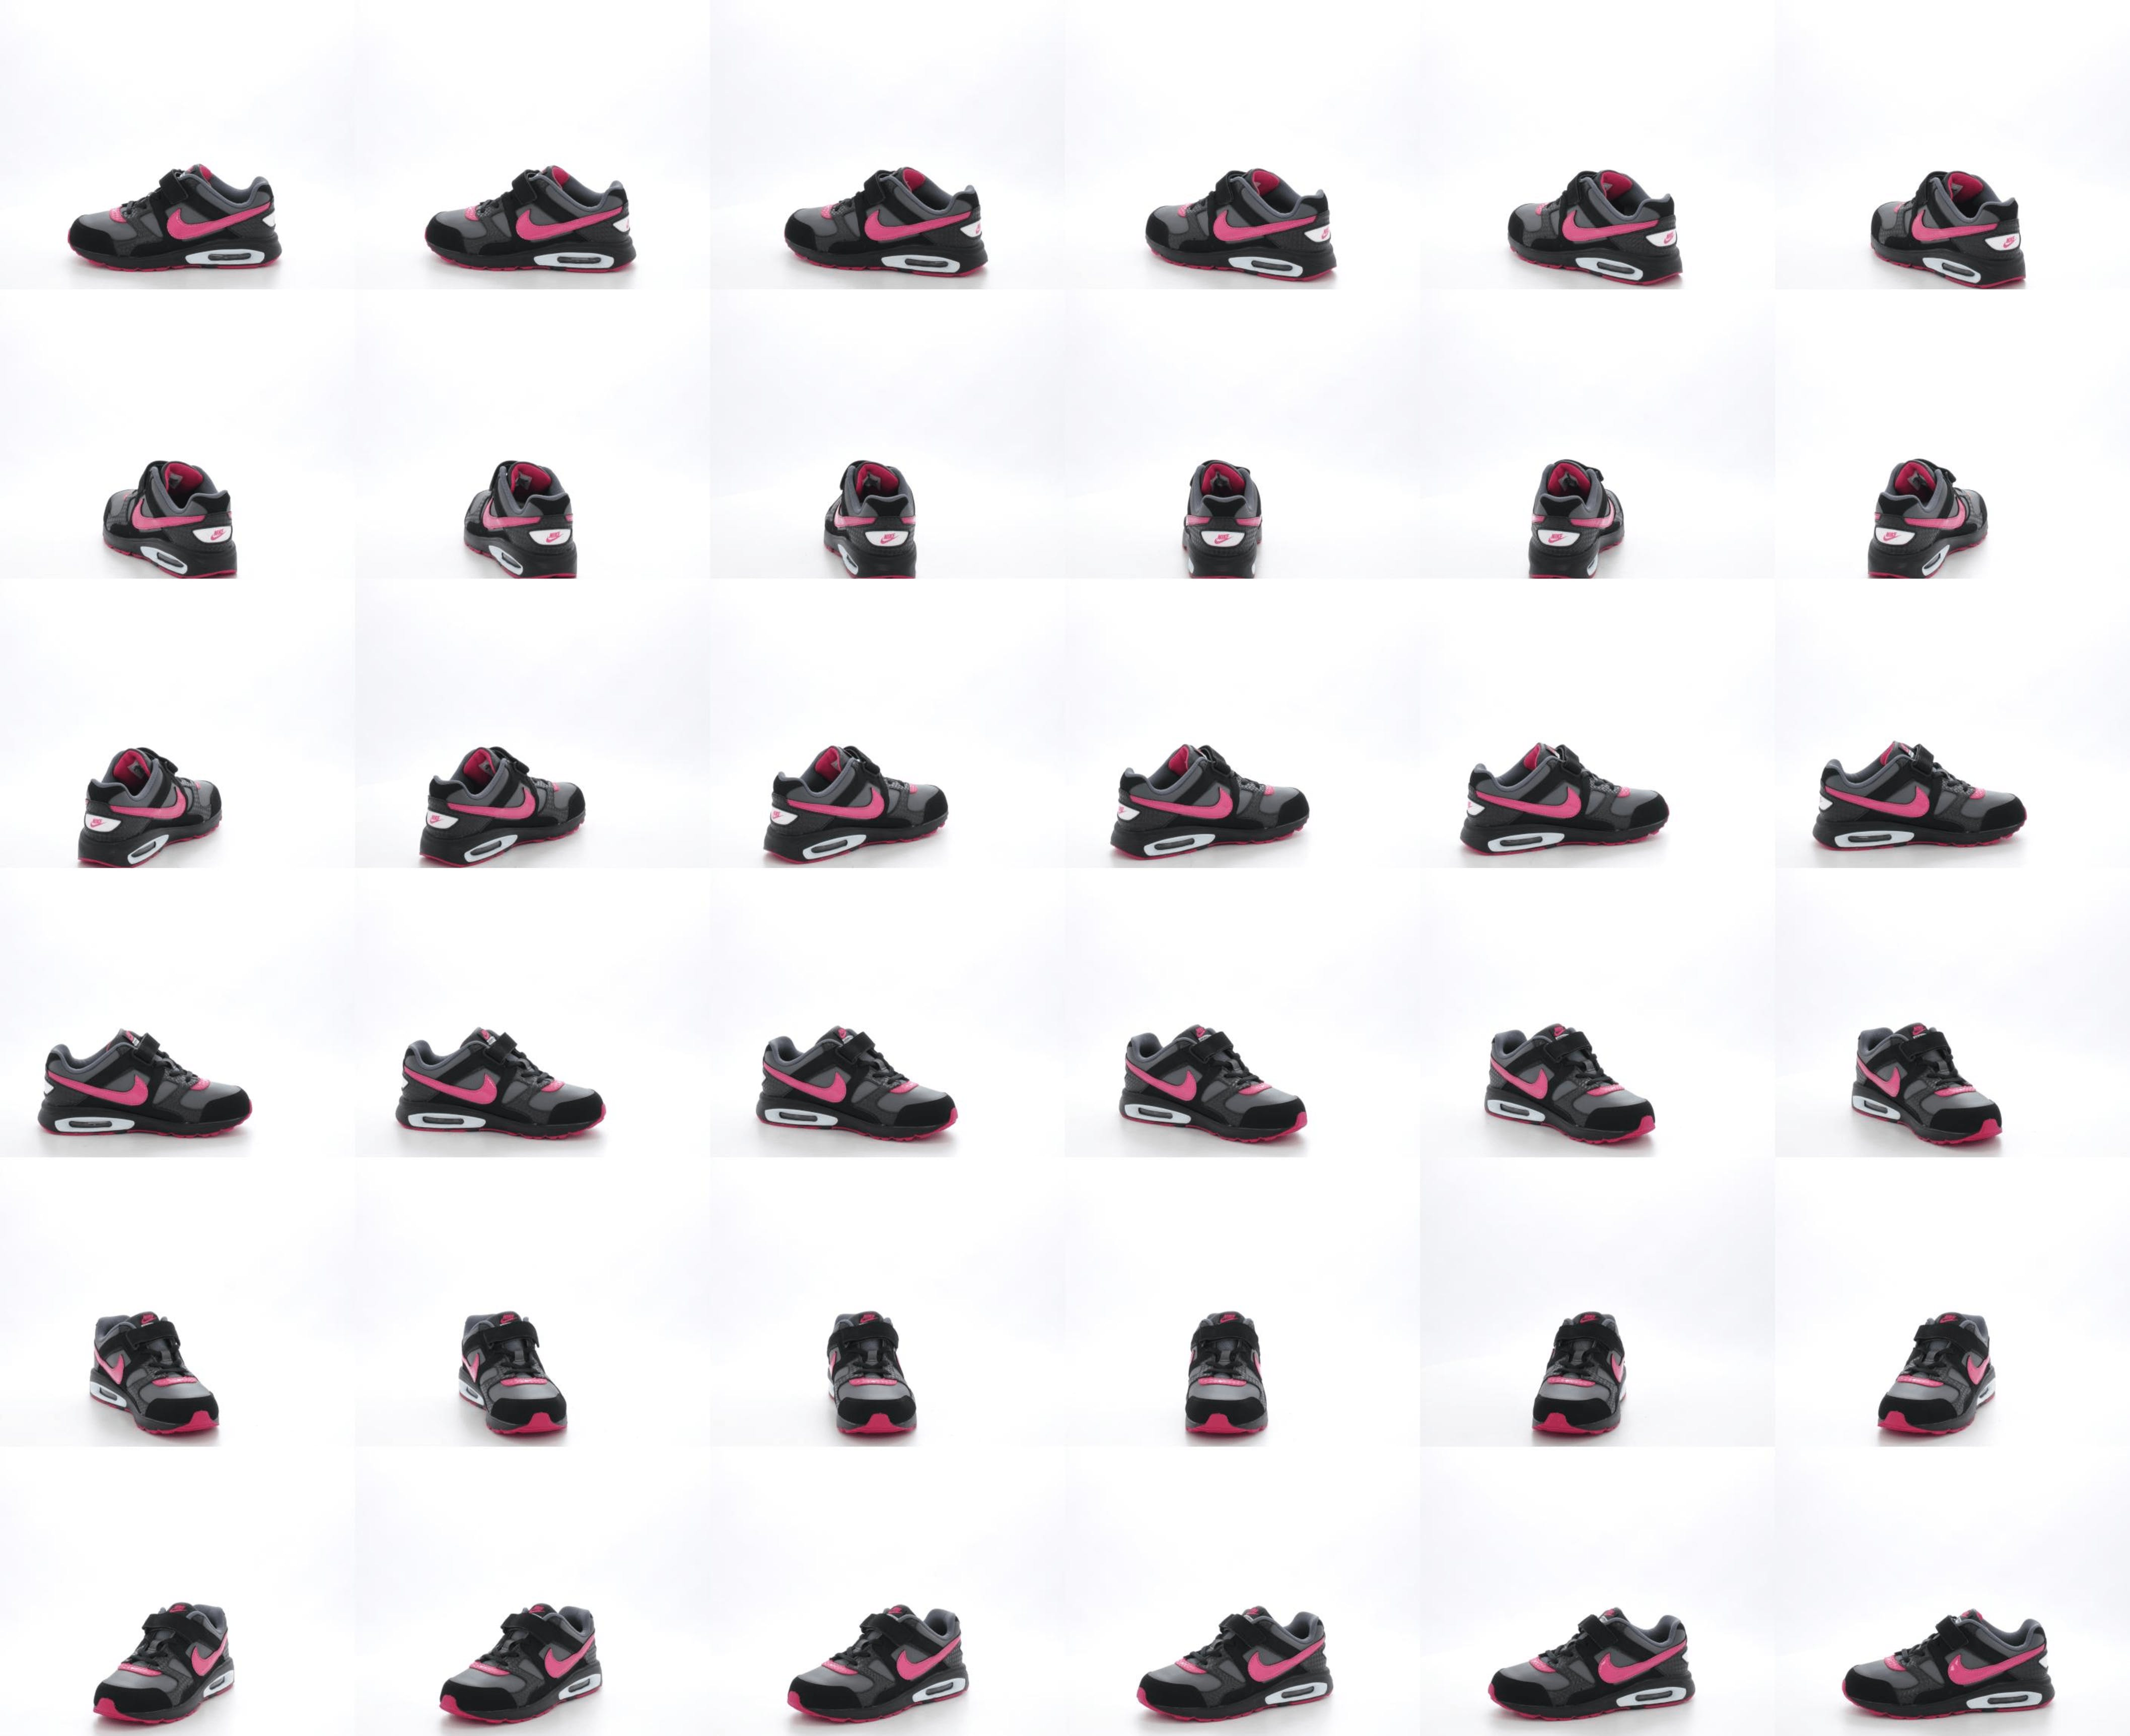 Air Max Chase Leather (PSV) Drkgry Frbrry